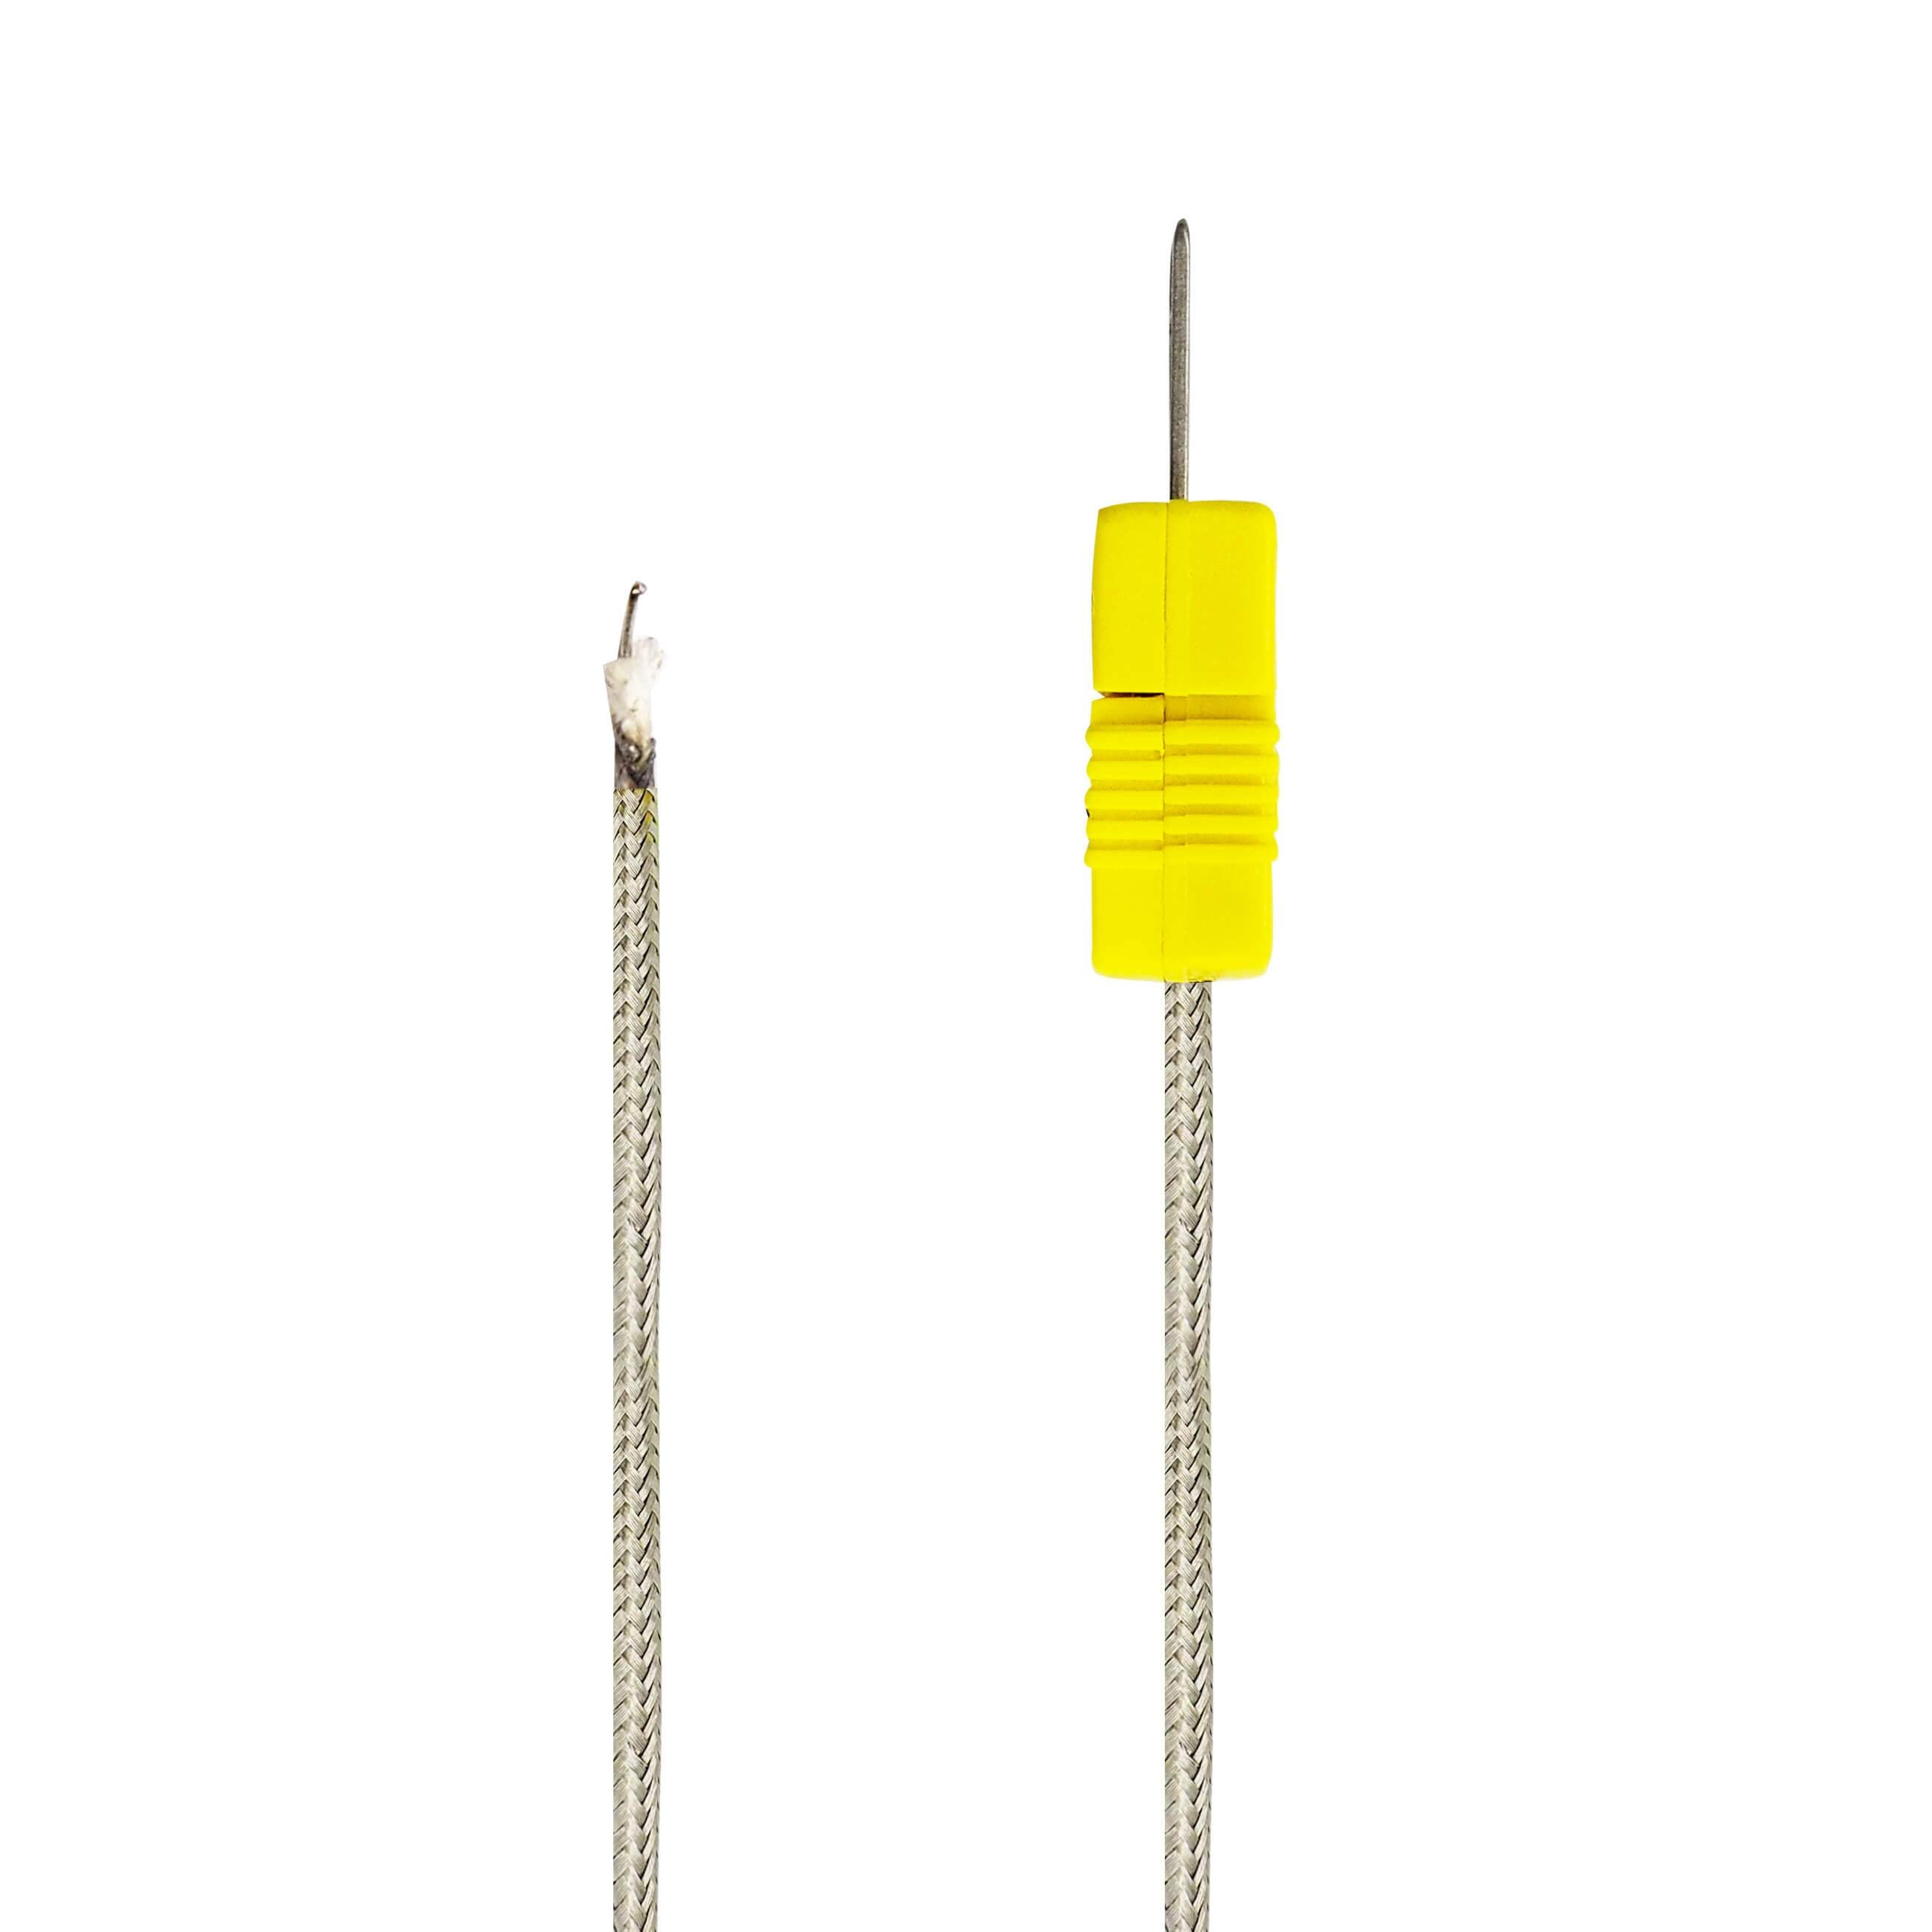 k type sensor probe for thermometer and thermocouple